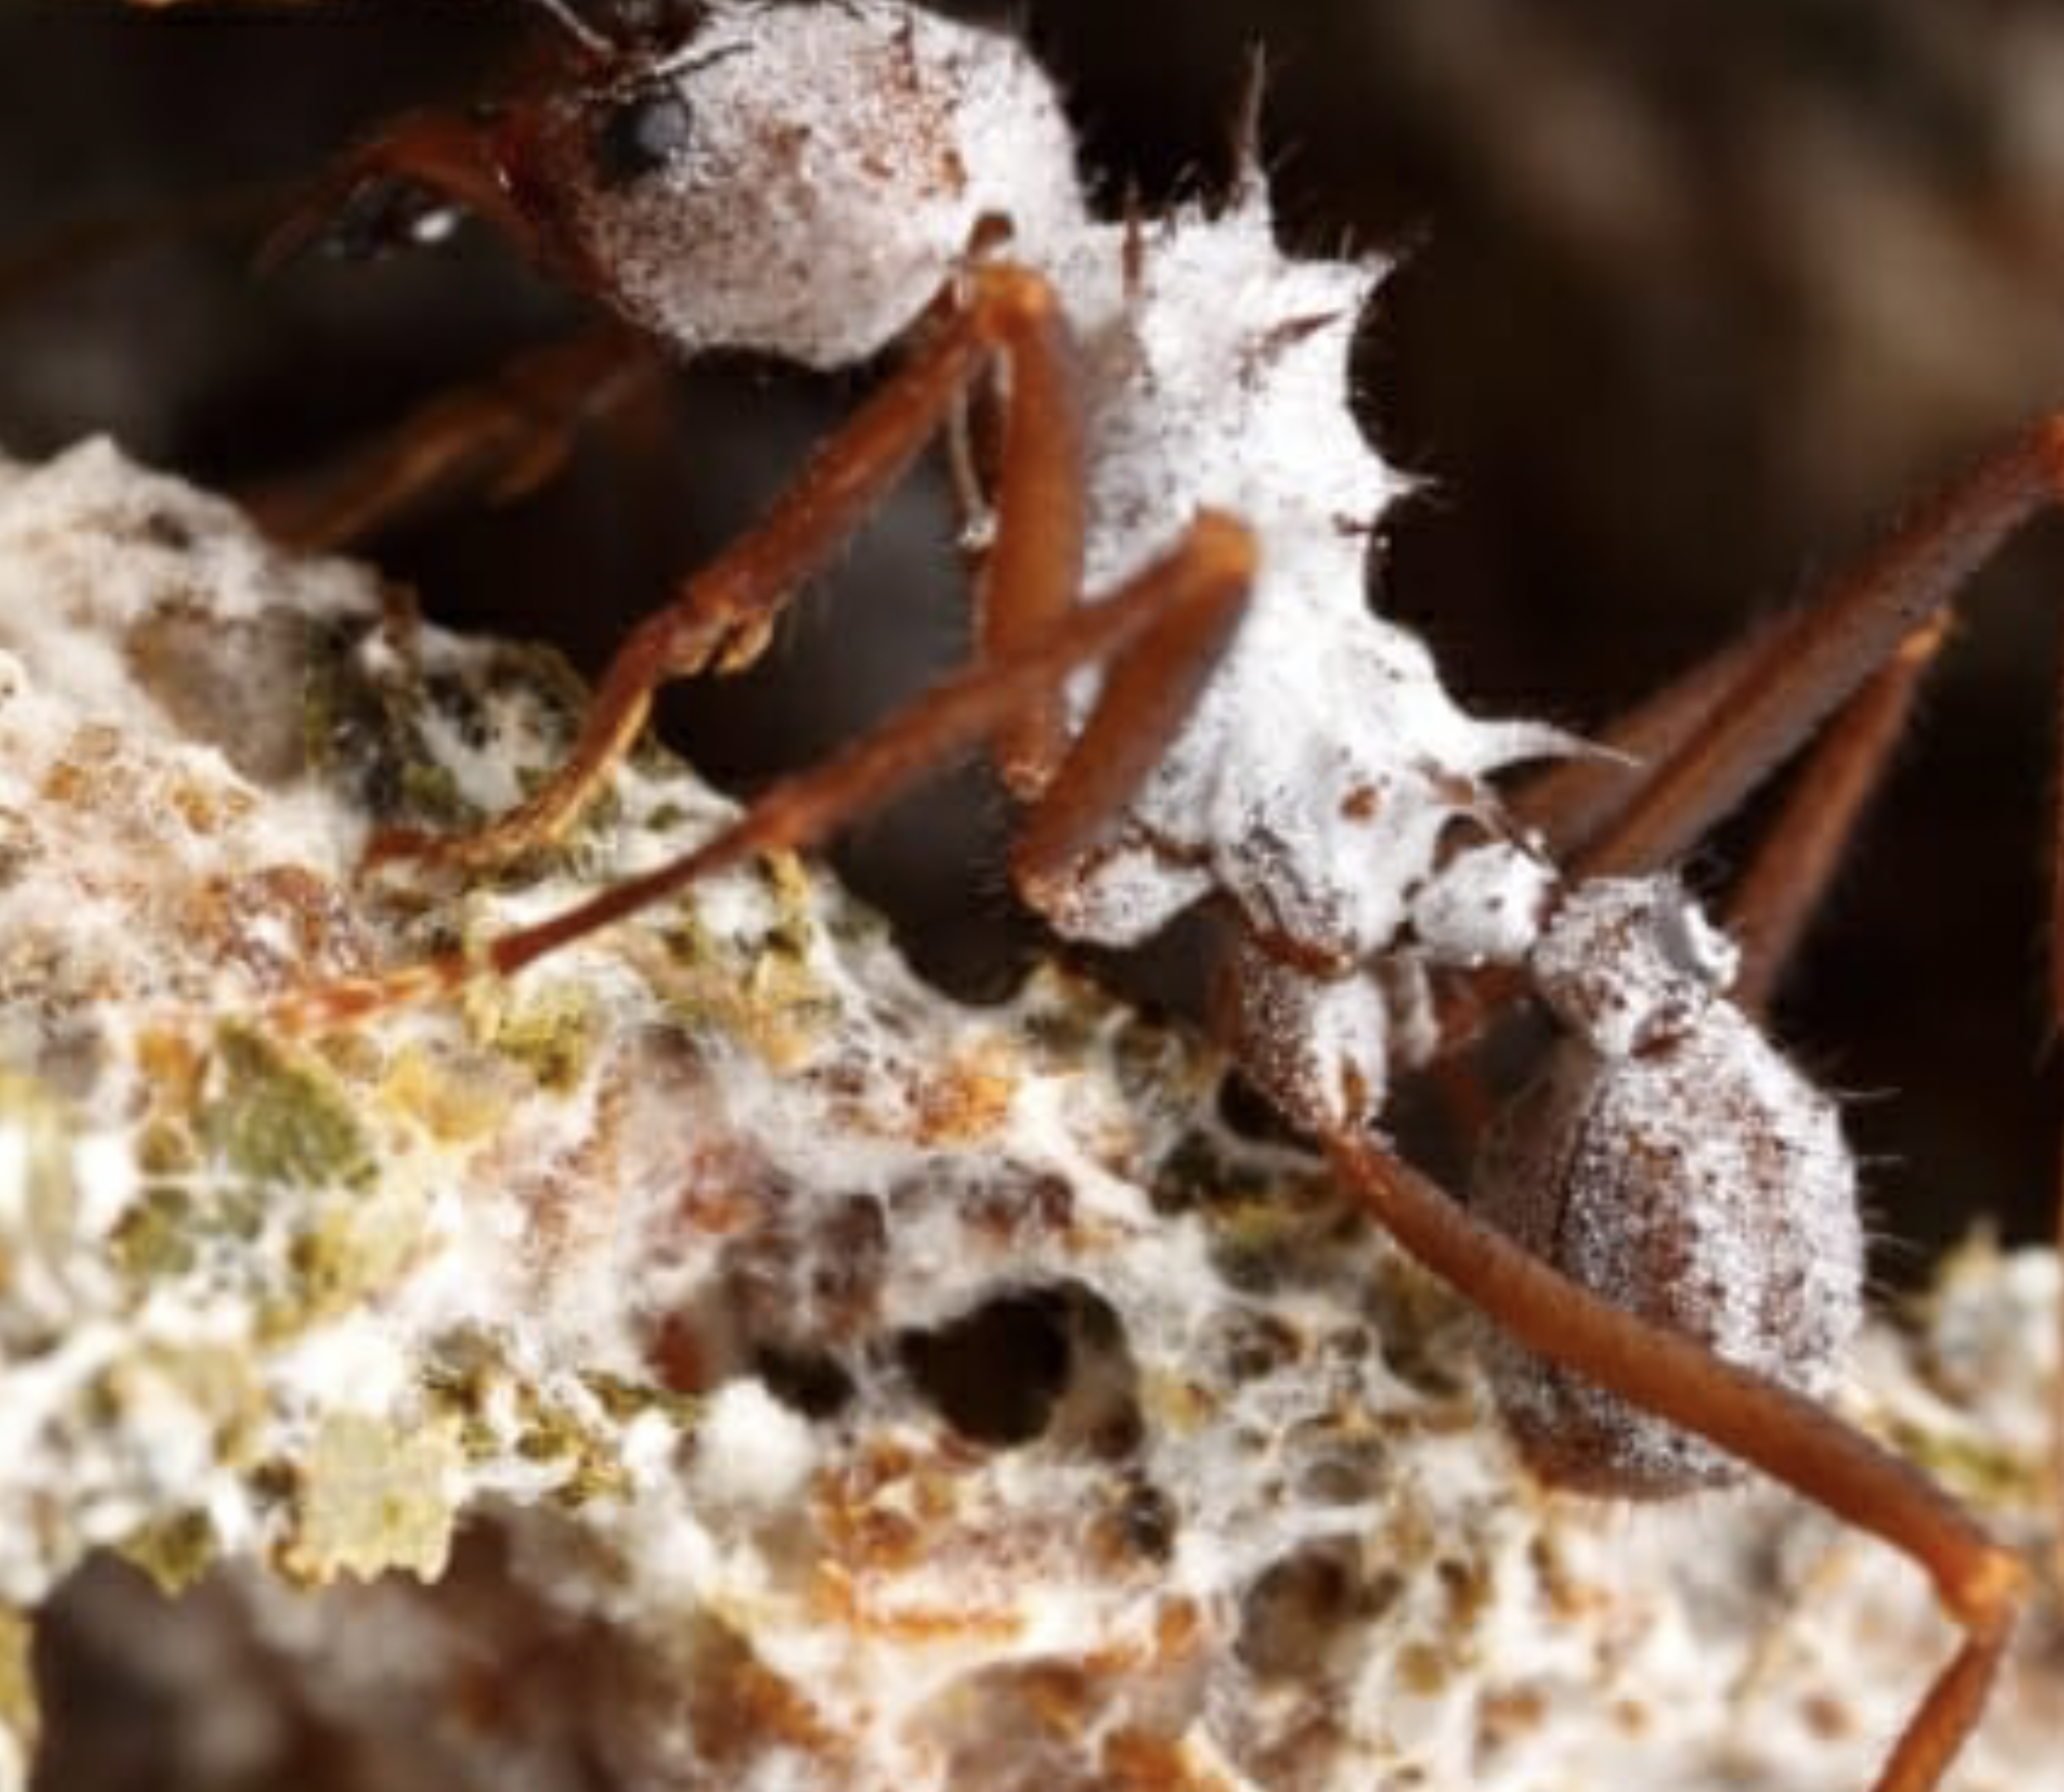 Ants invented agriculture long before humans started watching \'ant ...